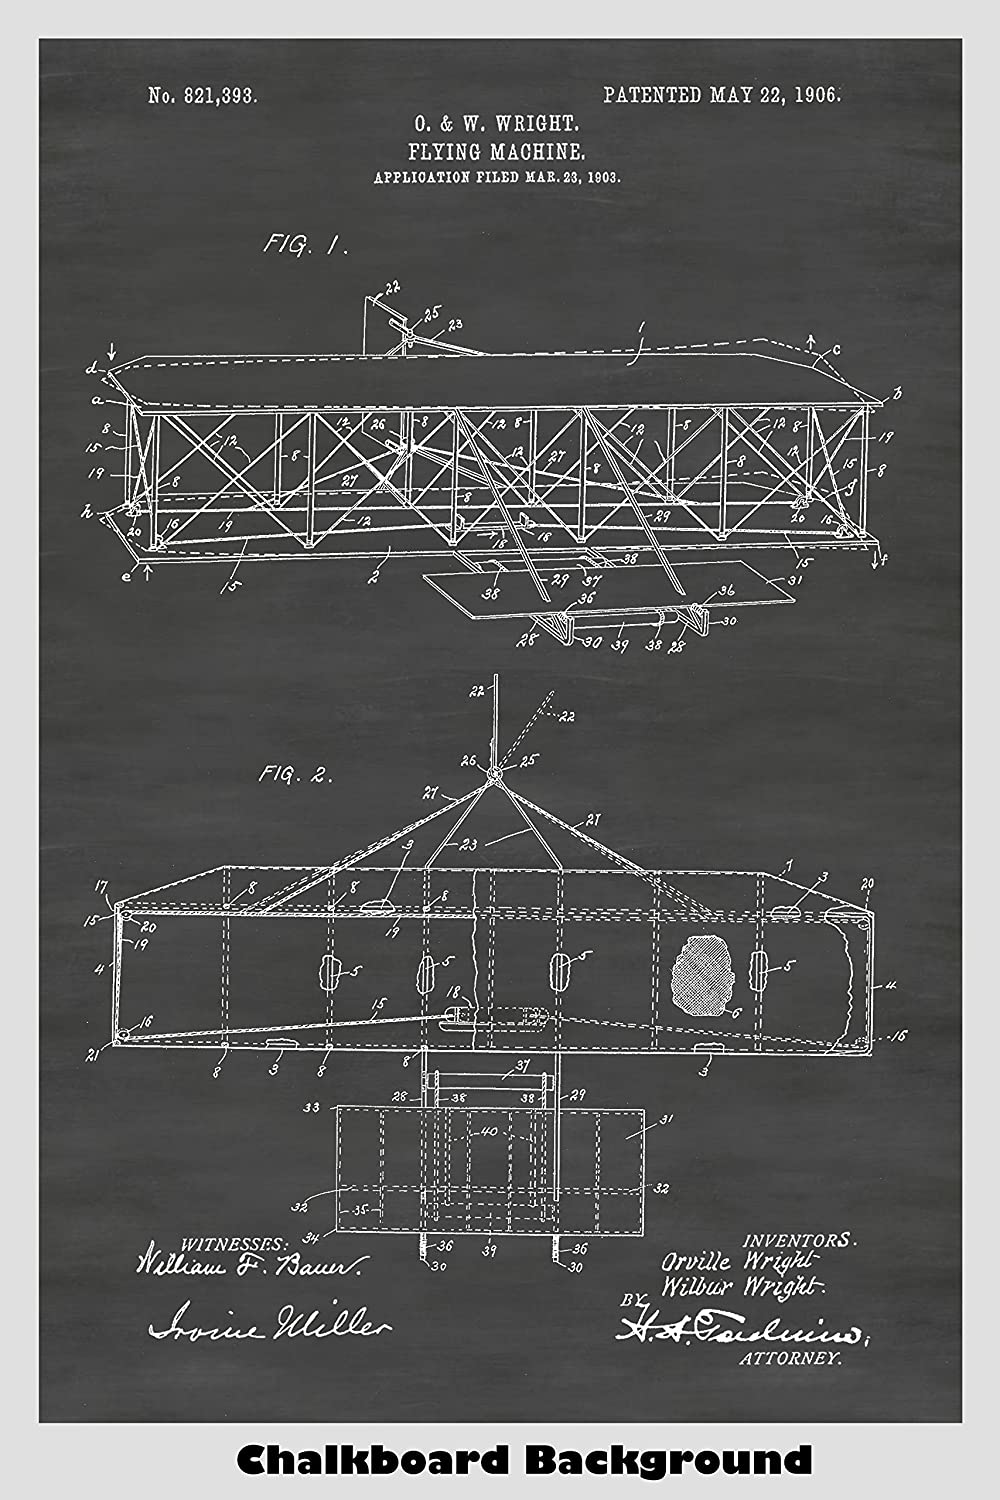 Wright Brothers Airplane Patent Print Art Poster: Choose From Multiple Size and Background Color Options